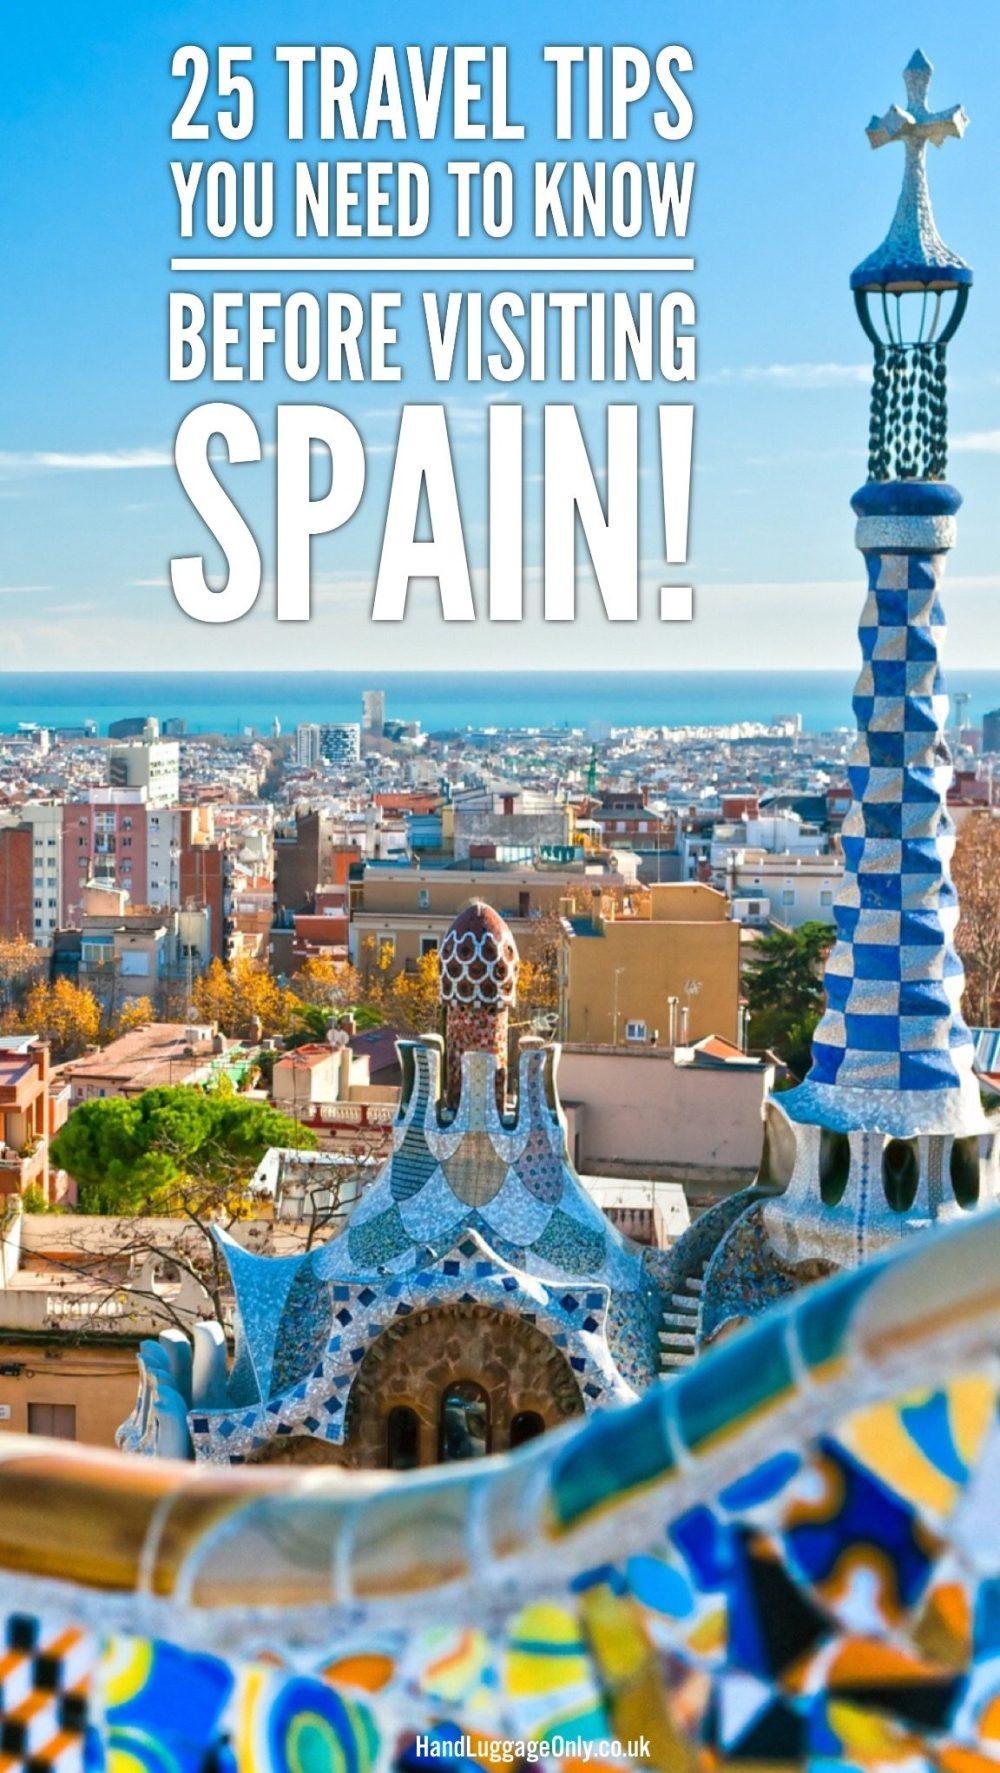 25 Travel Tips You Need To Know Before Visiting Spain